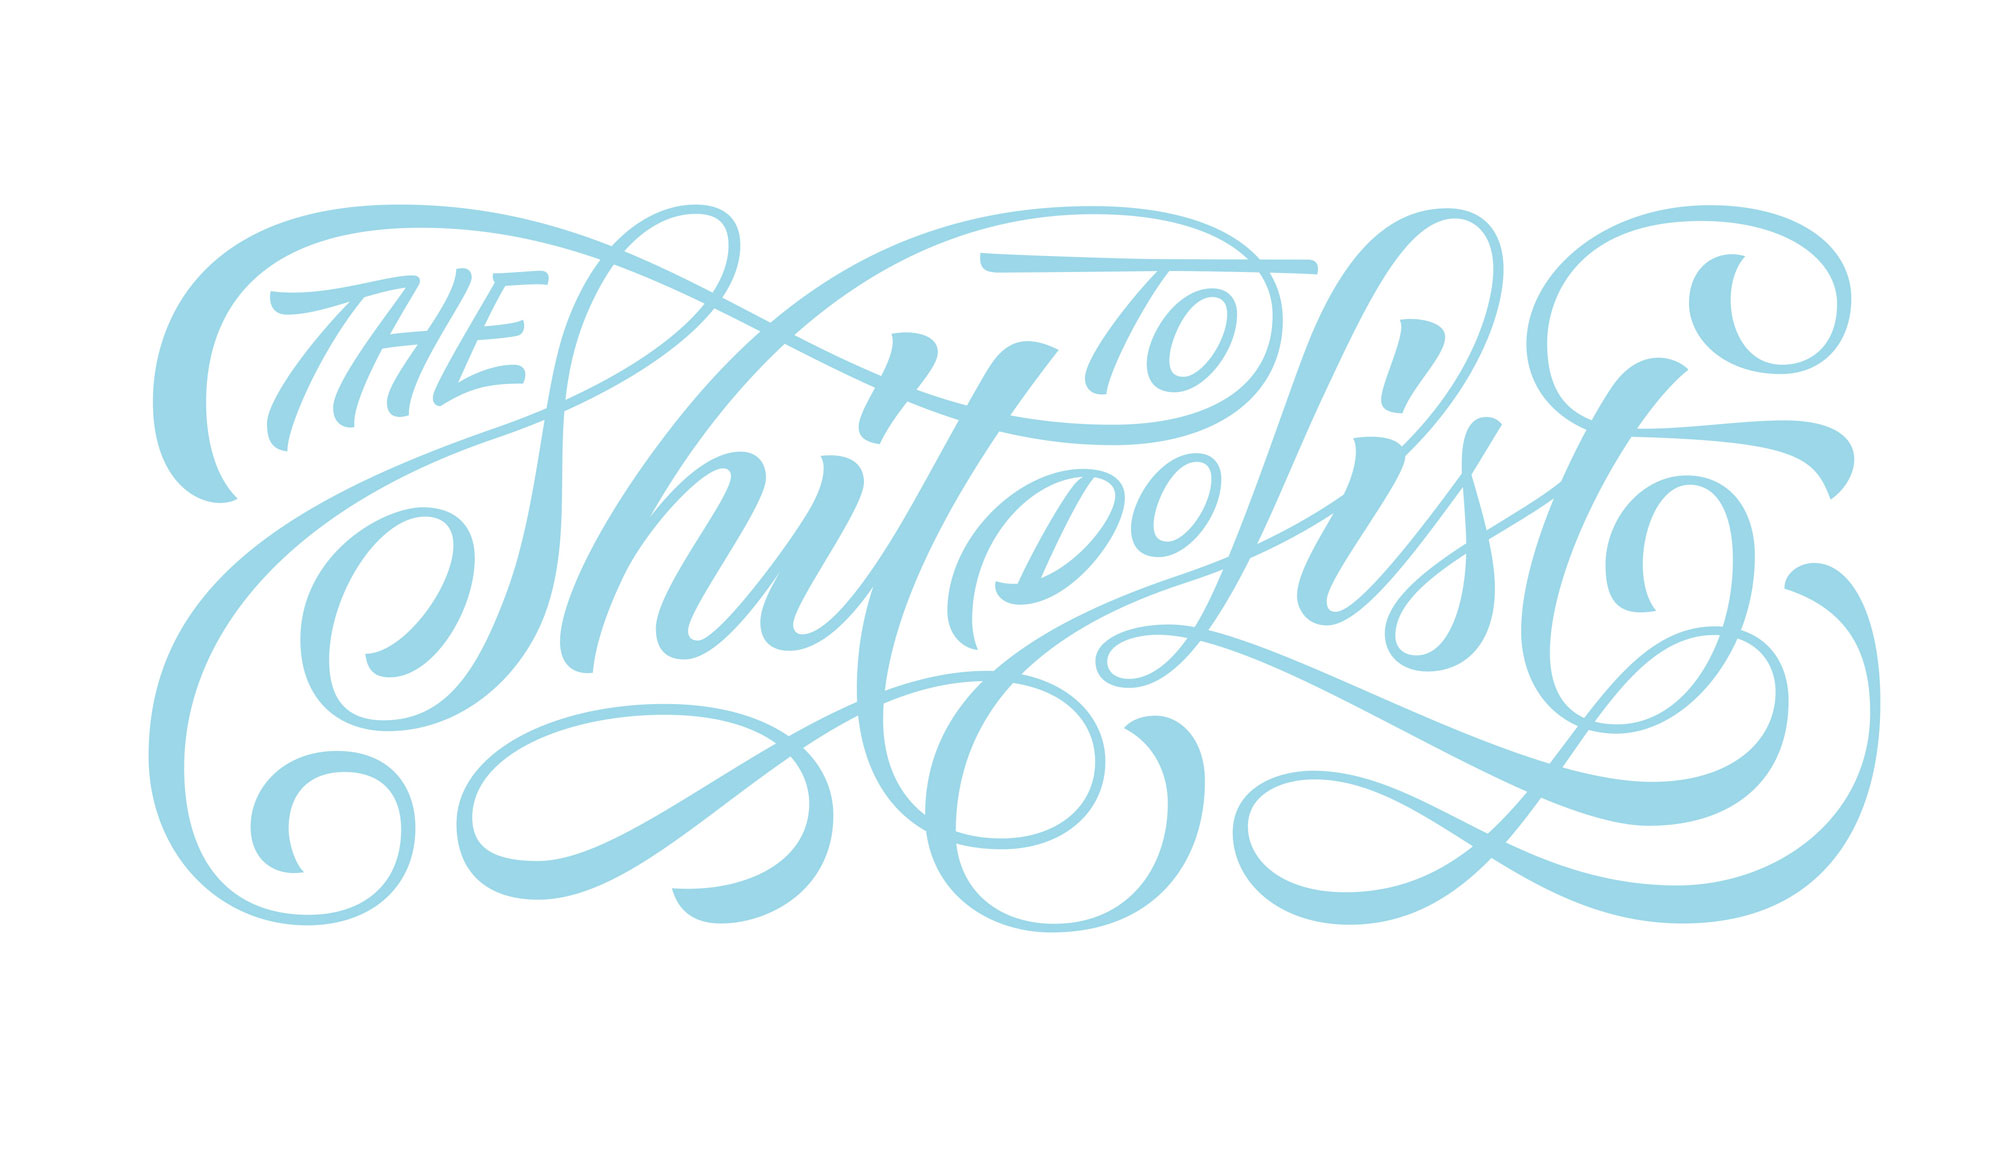 Dave Foster, lettering